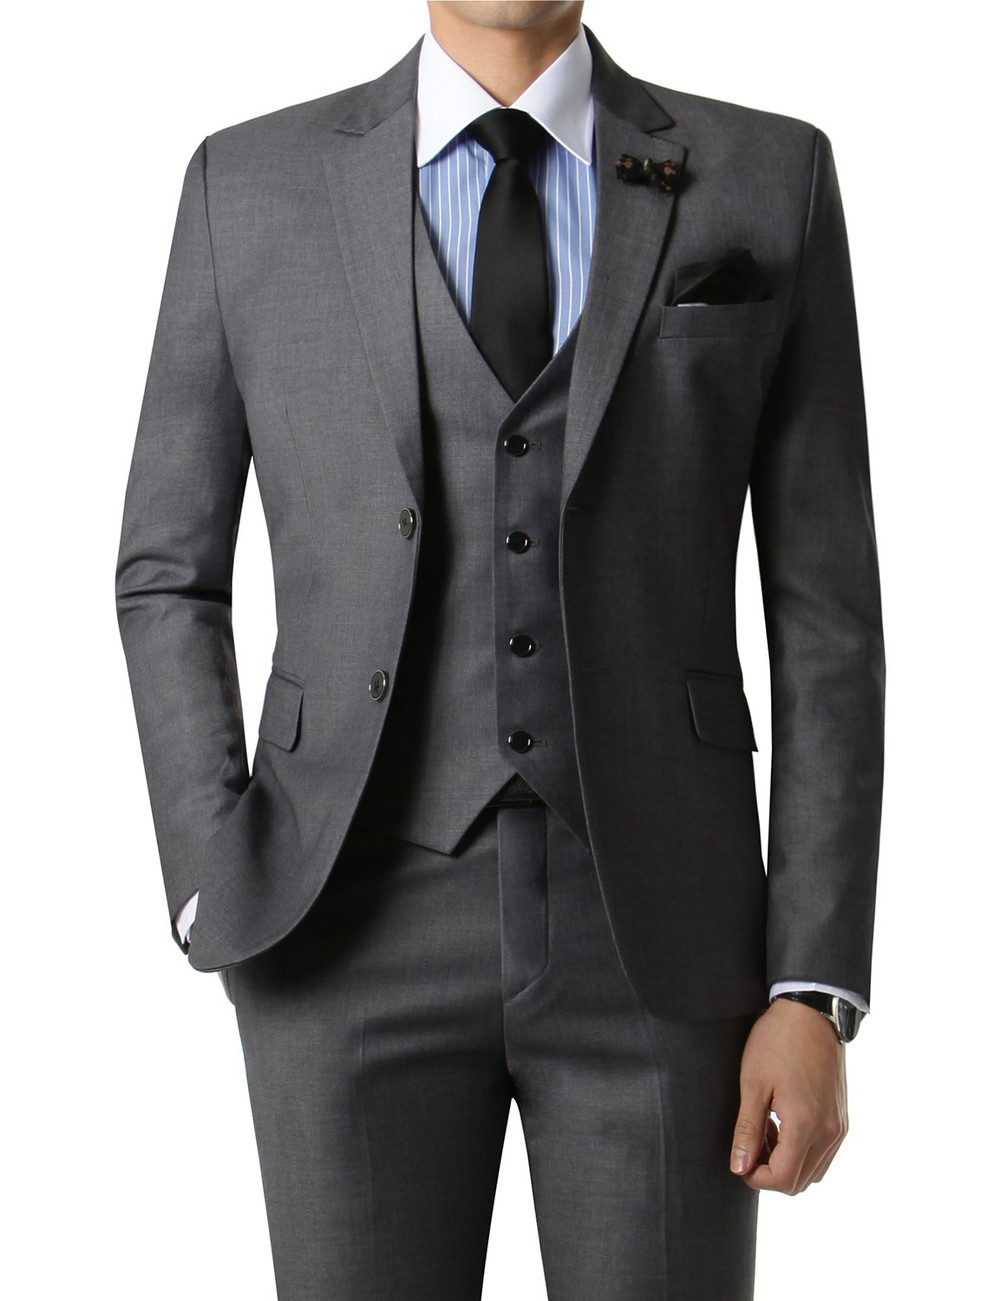 Good tailoring can make any suit look like it was made specifically for you..